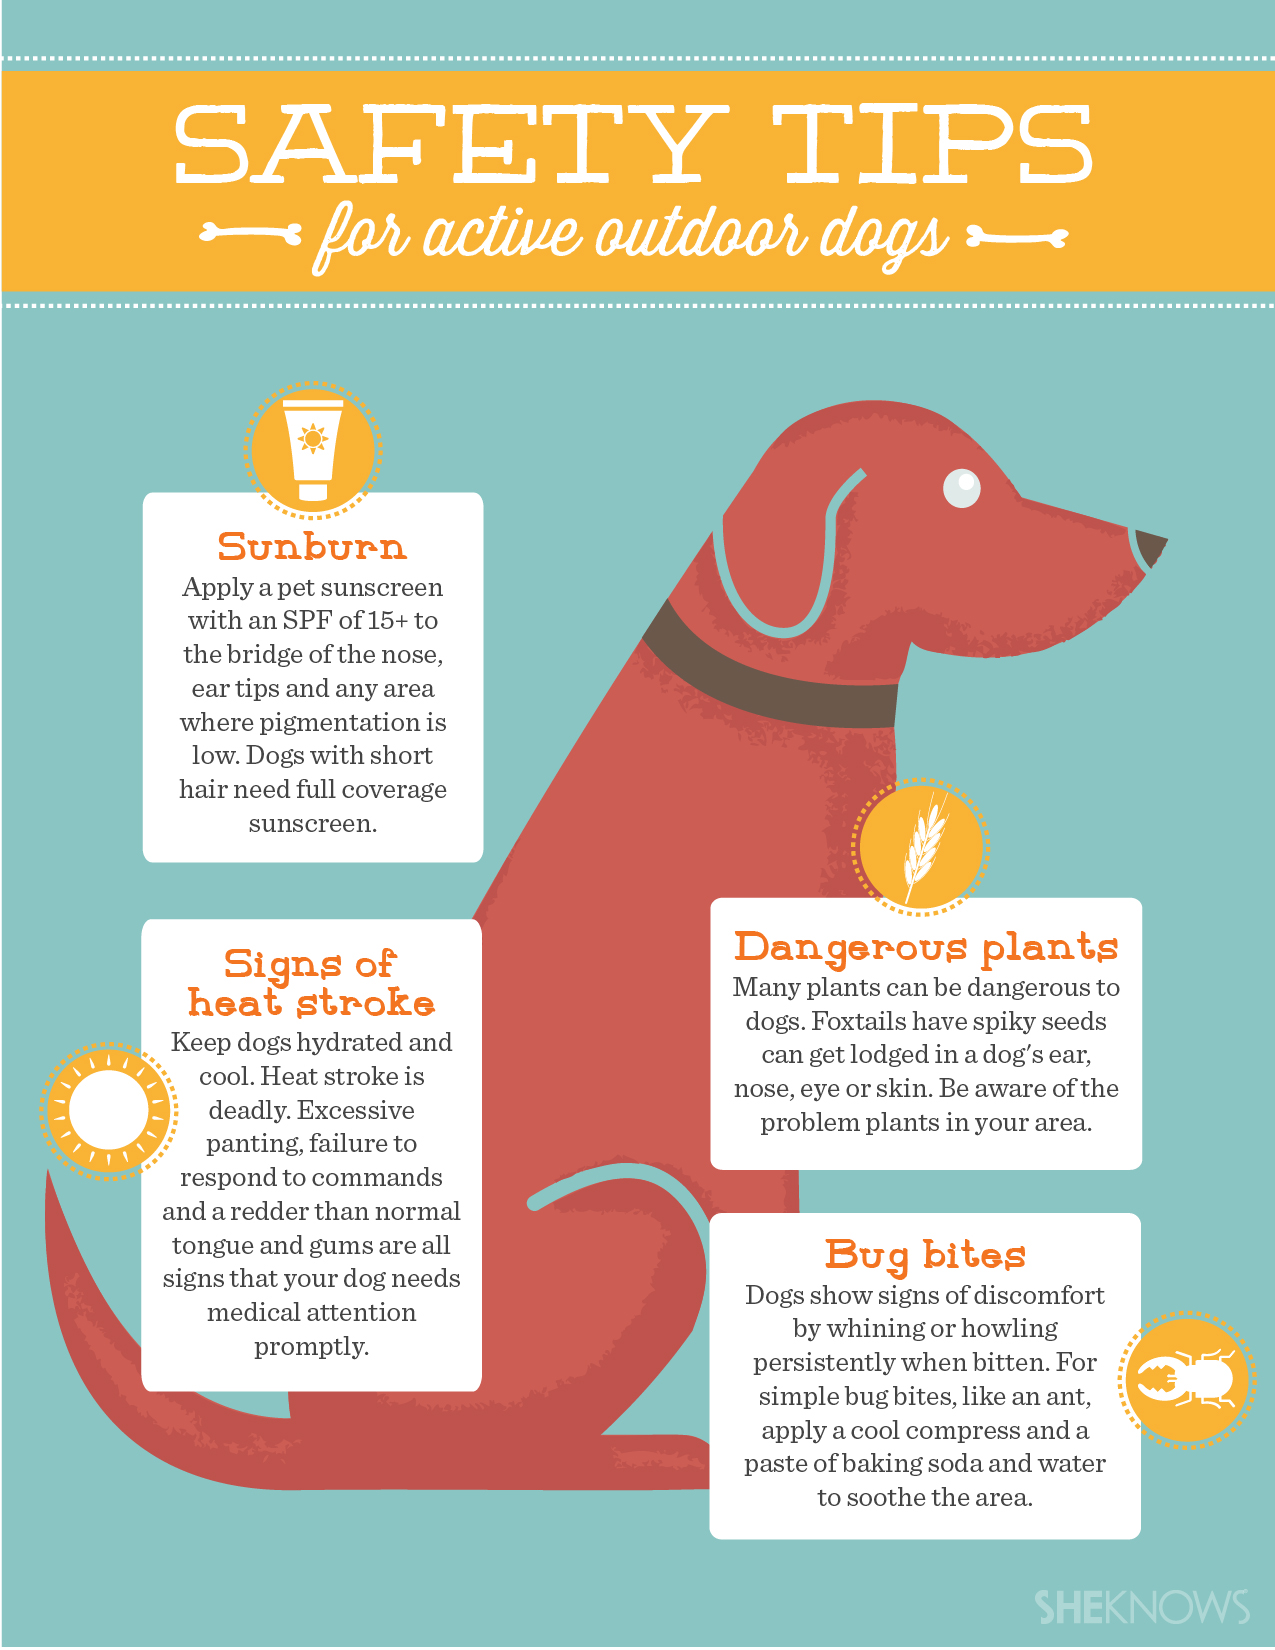 Safety tips for active outdoor dogs